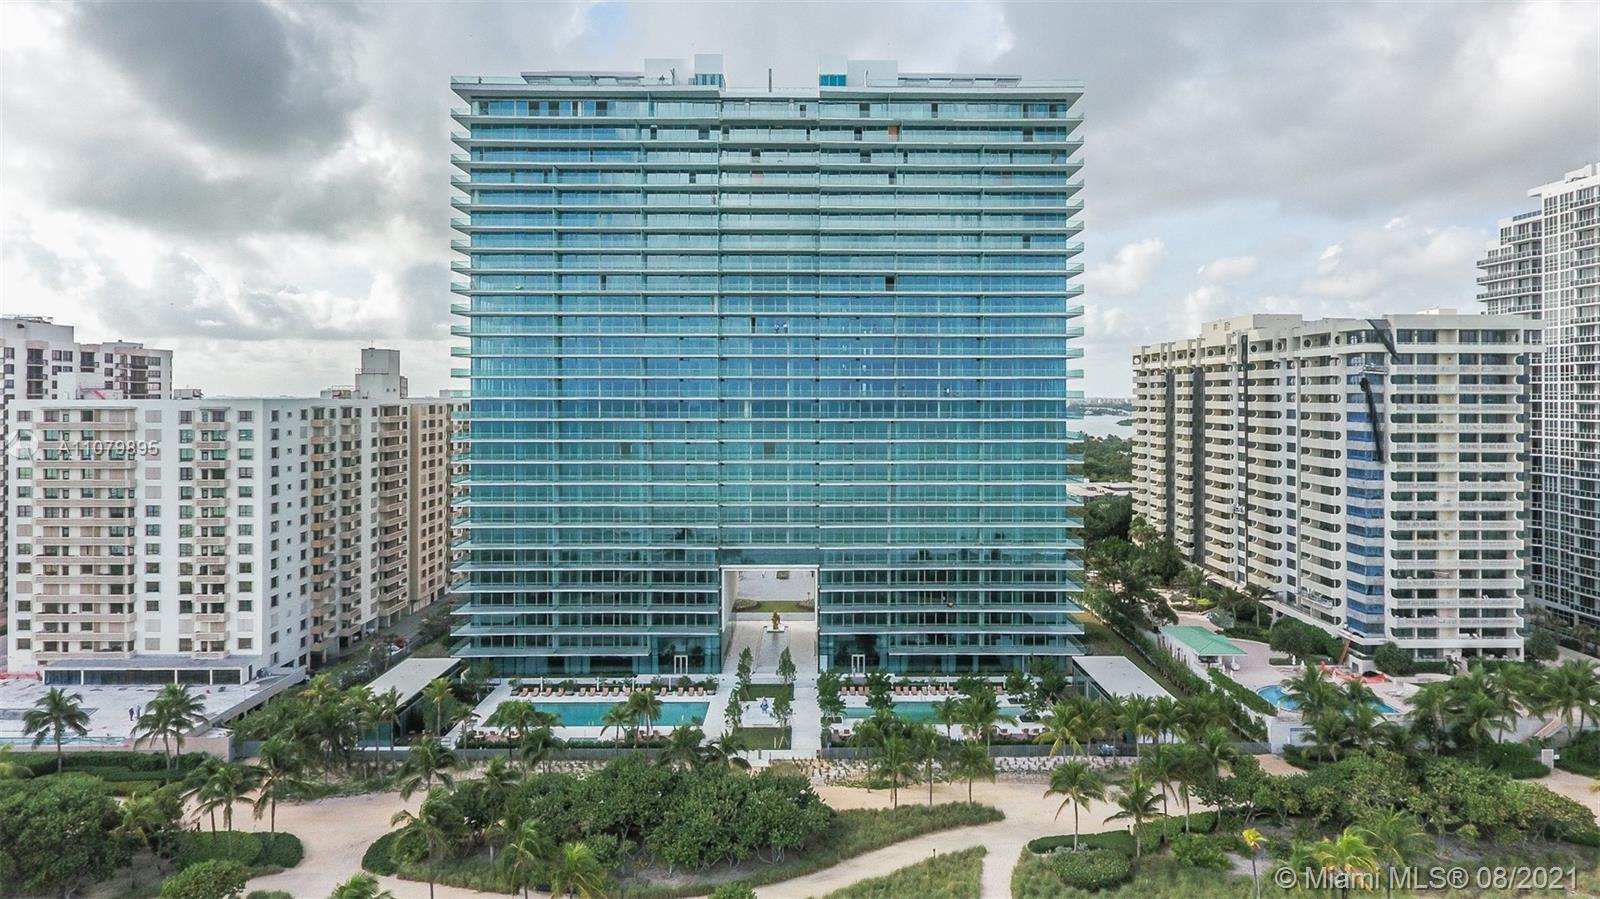 10201 Collins Ave, Unit #2401 Luxury Real Estate